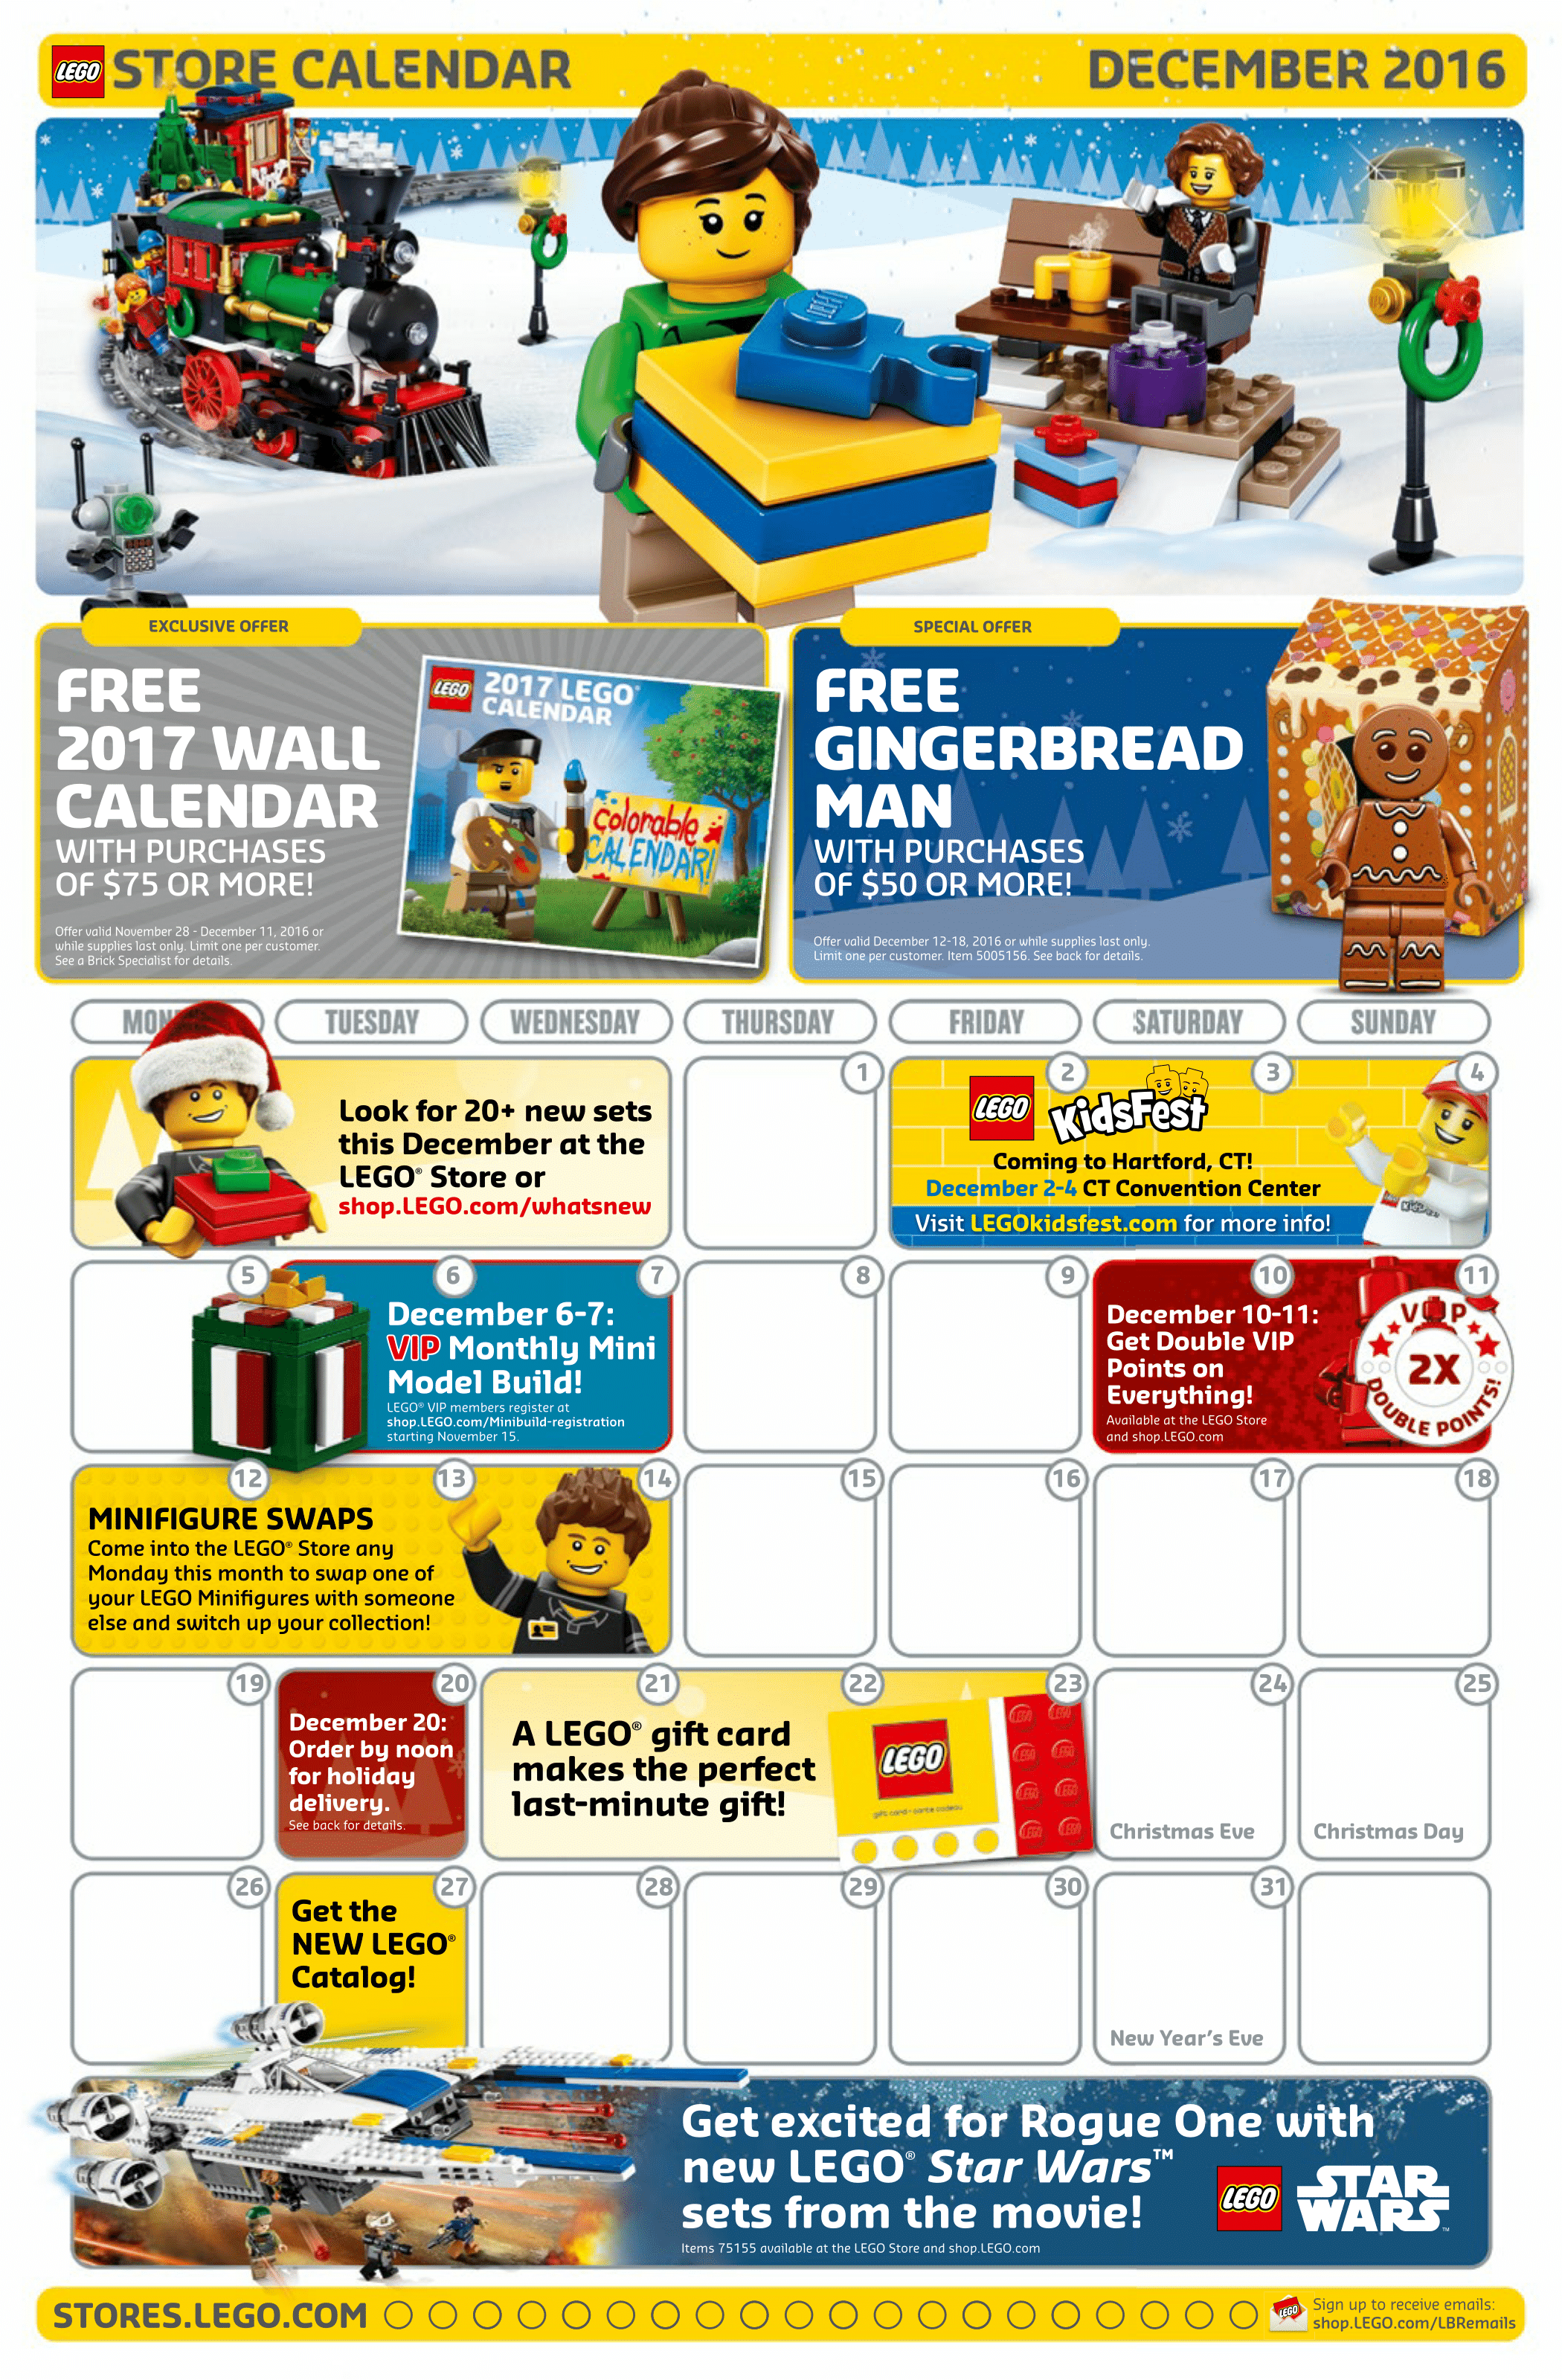 Lego December 2016 Store Calendar is posted   Minifigure Price Guide